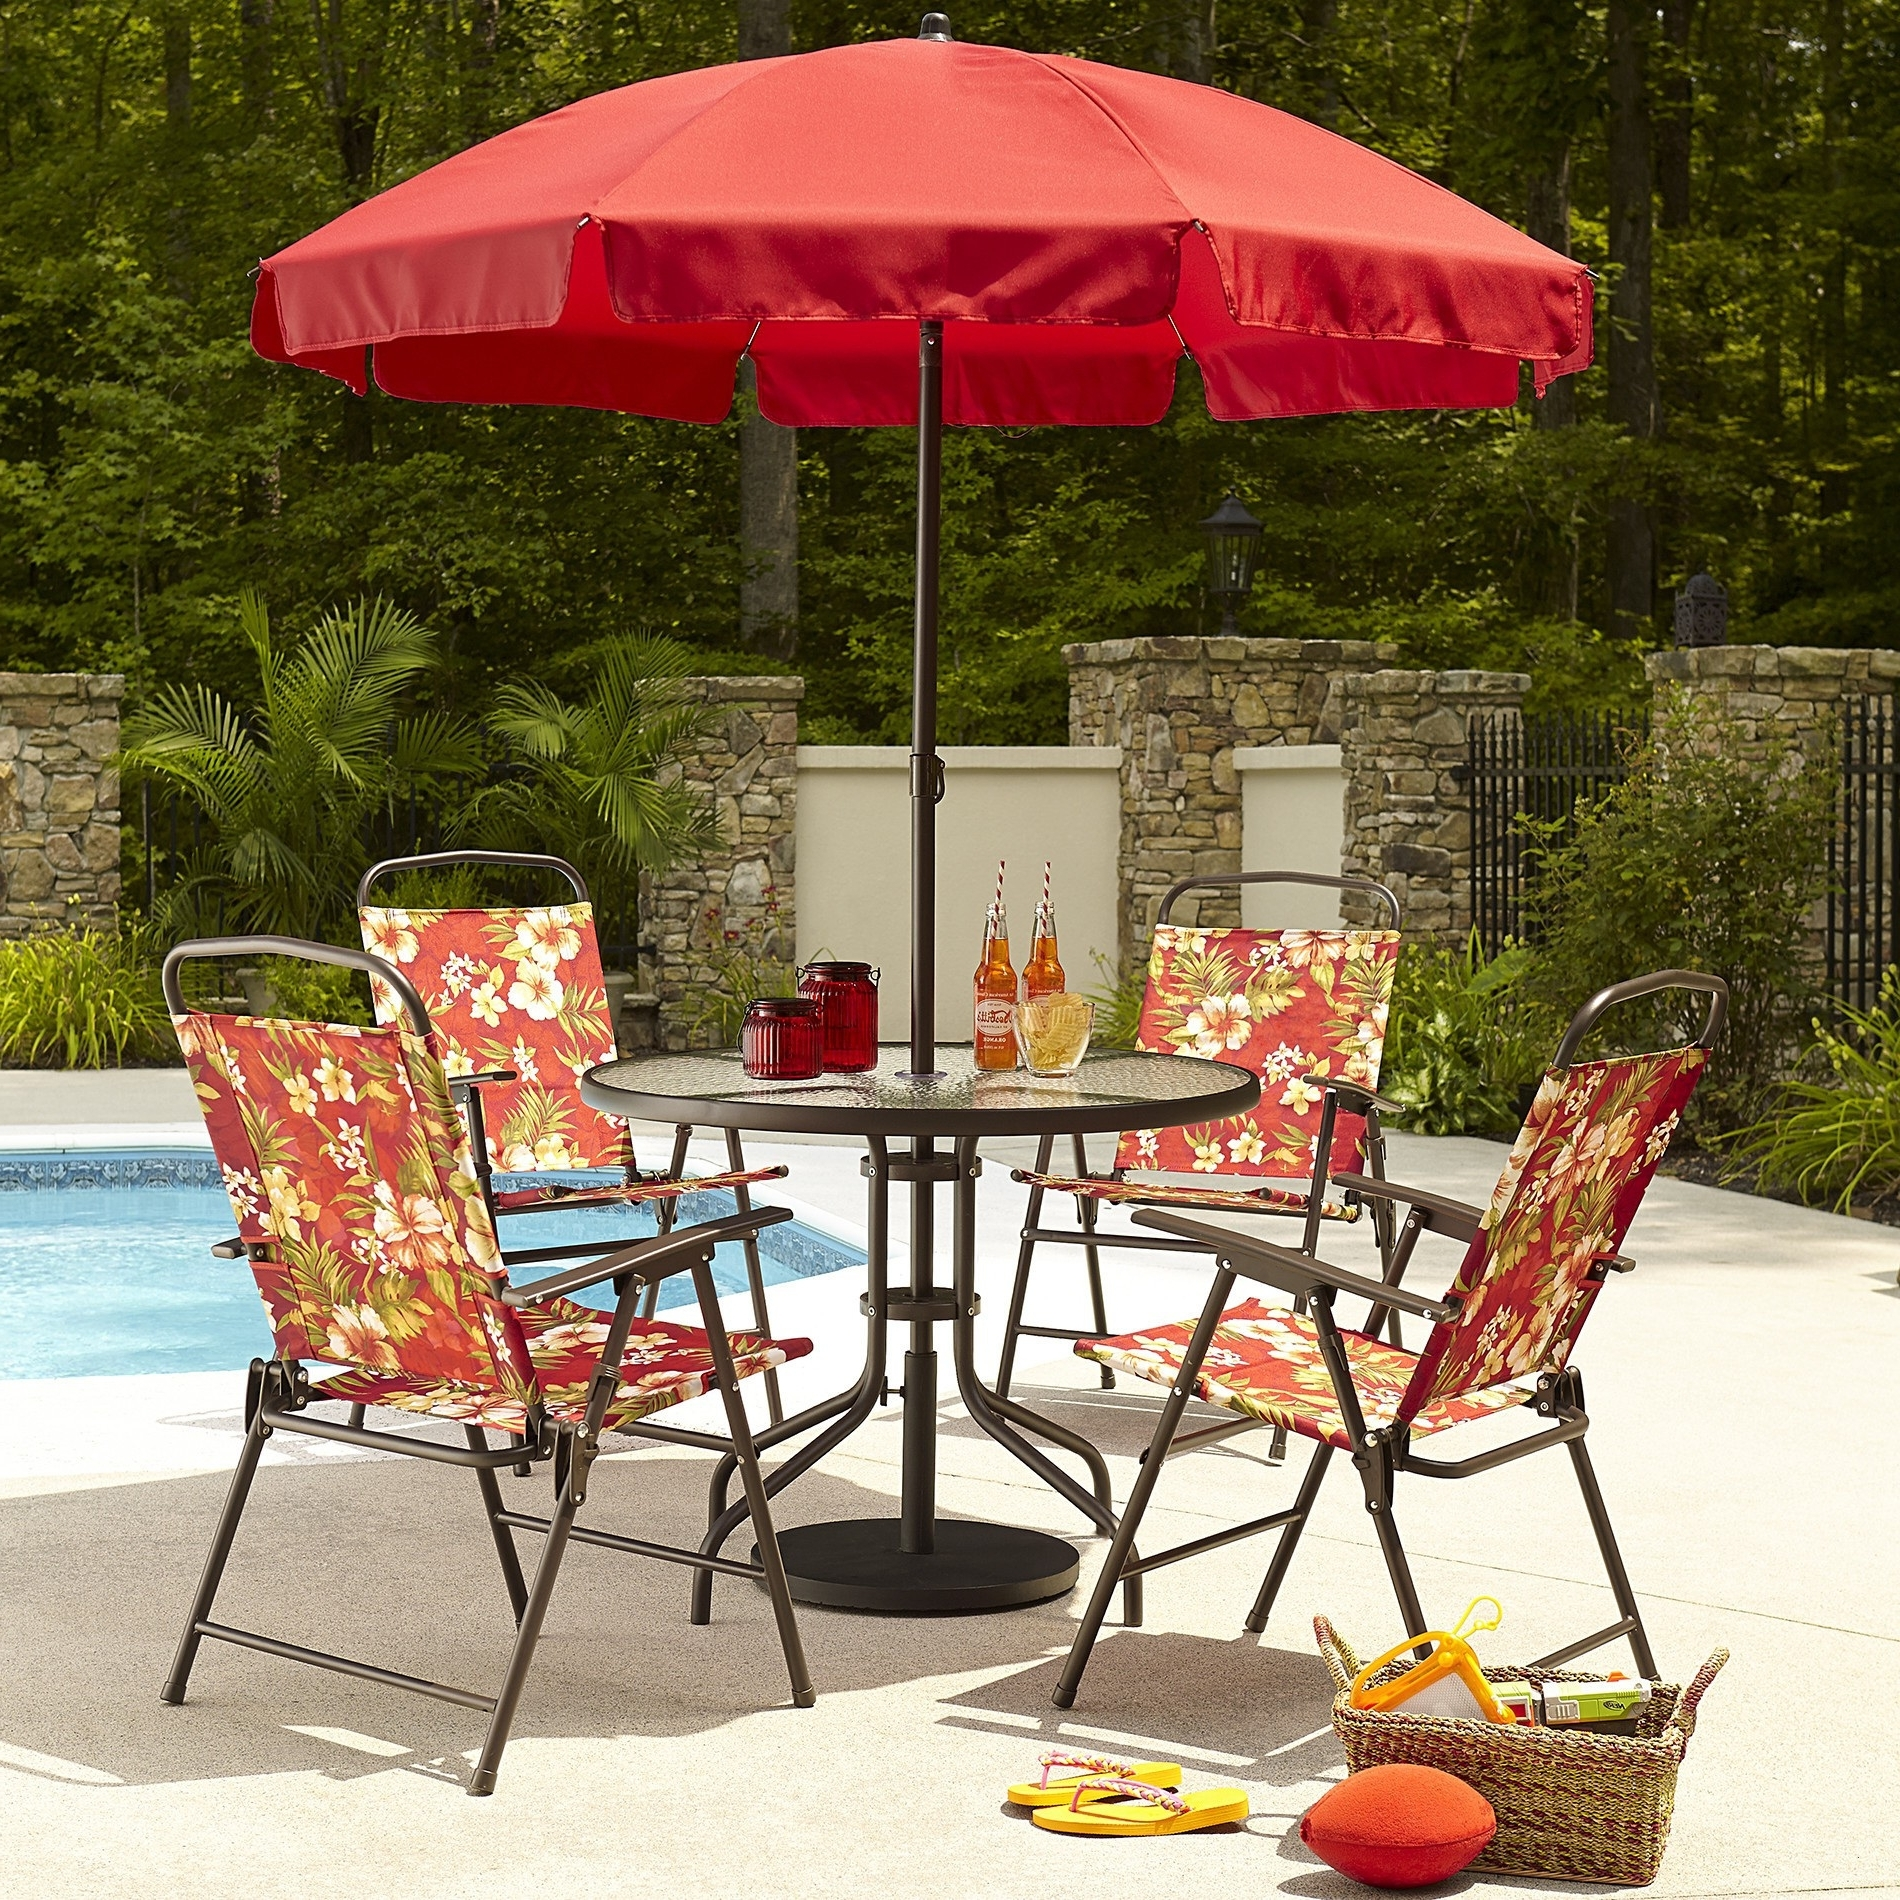 Well Known Kmart Patio Umbrellas Inside Kmart Outdoor Furniture Clearance New Cheap Kmart Patio Umbrellas (View 20 of 20)